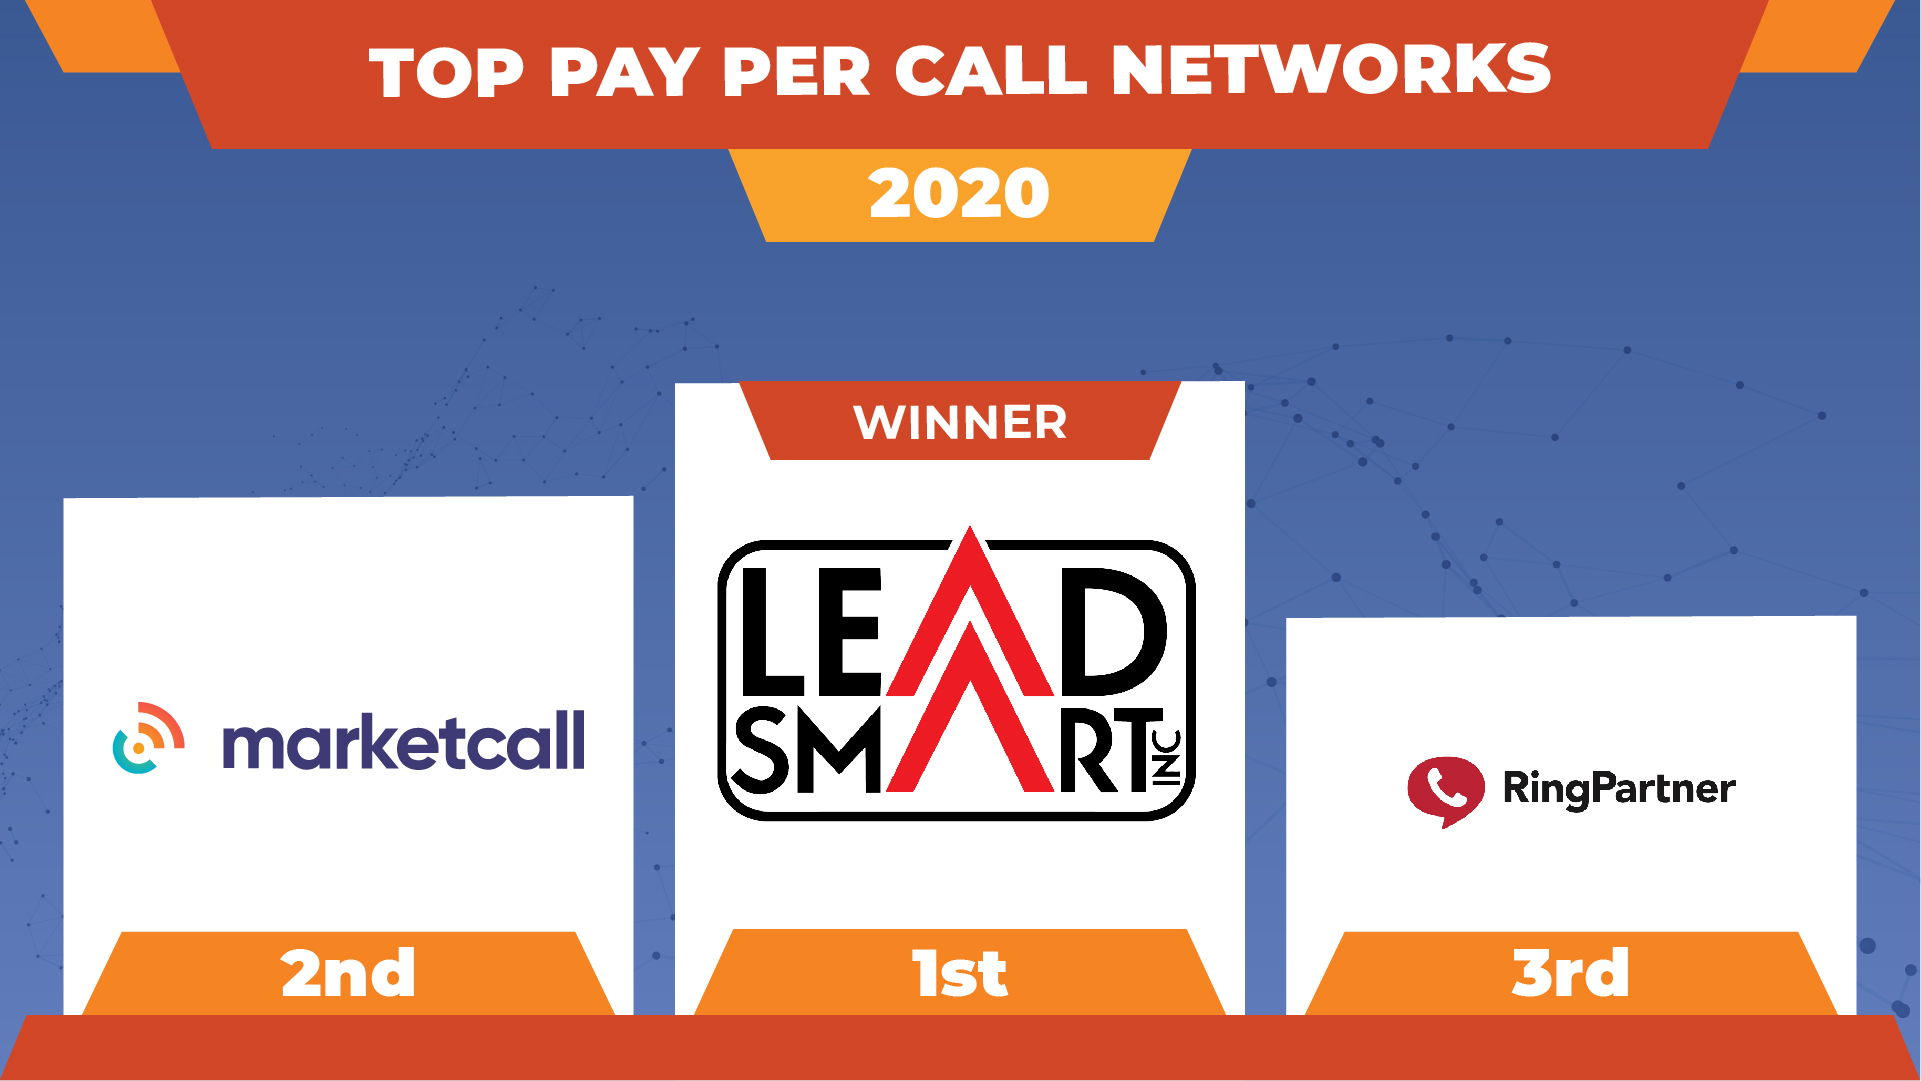 Top Pay Per Call Networks